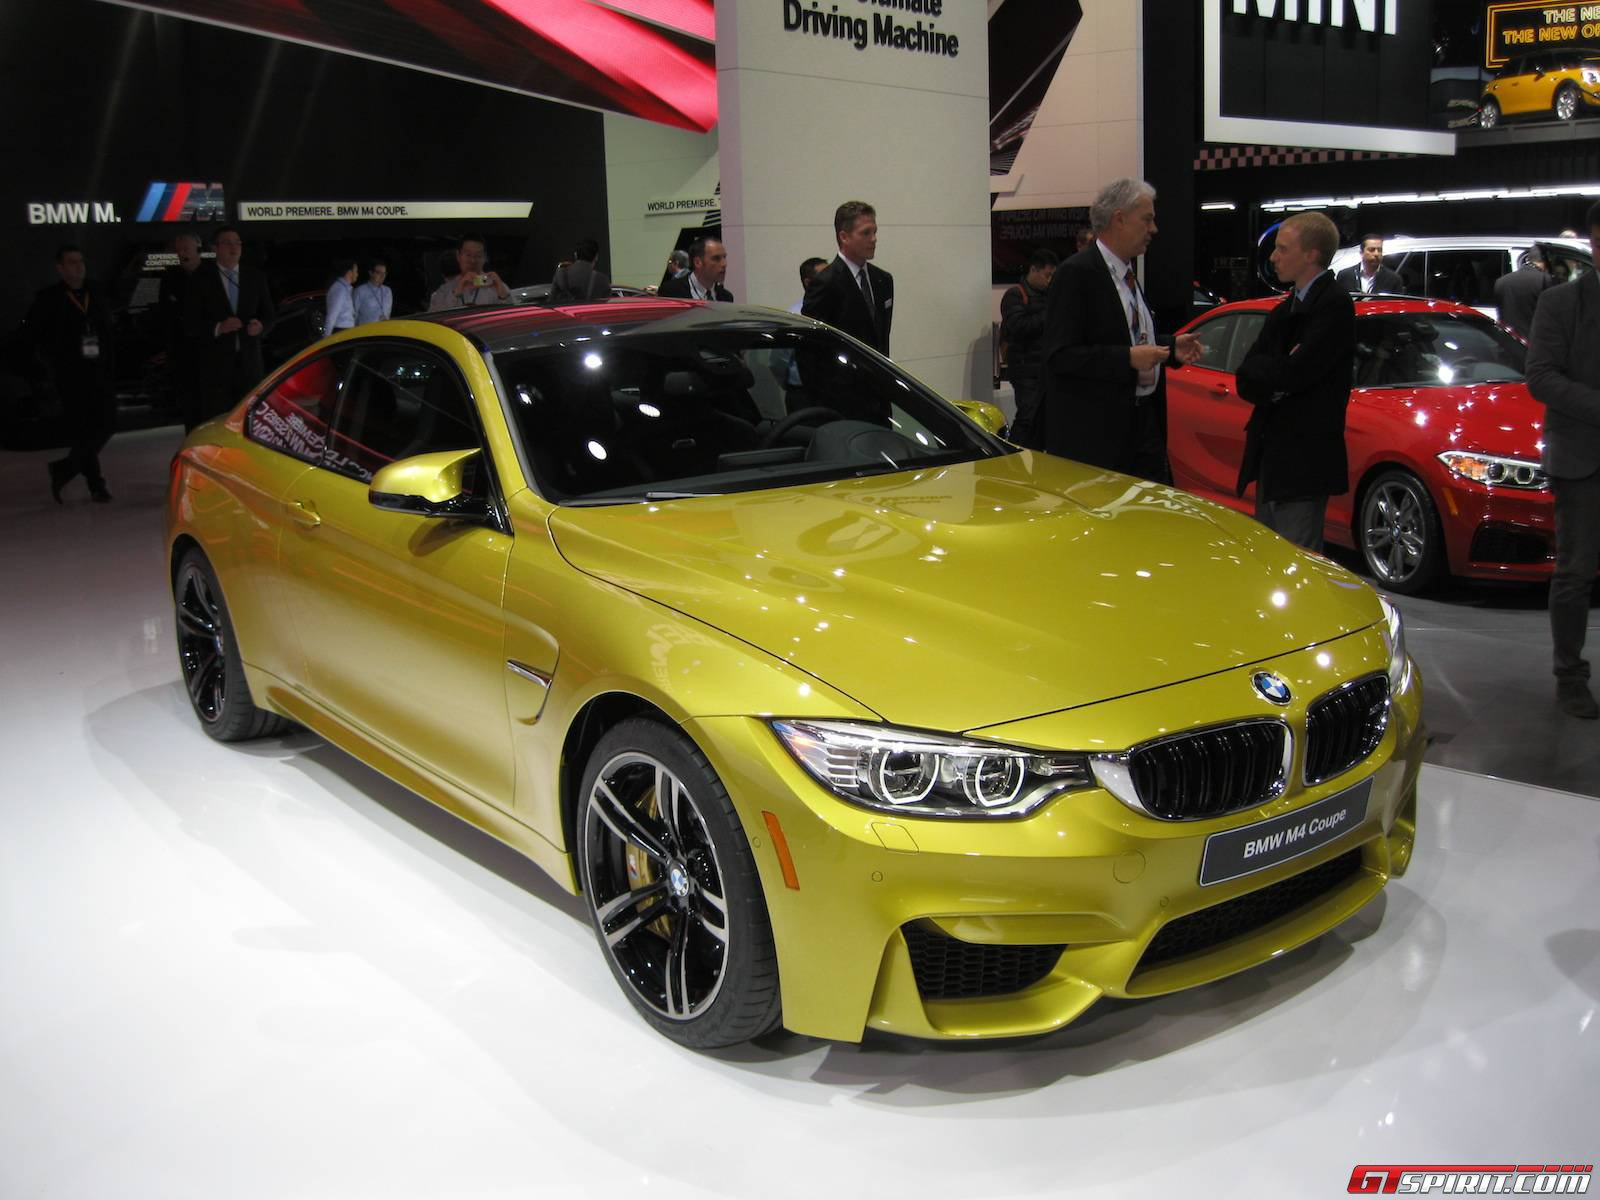 2014 bmw m3 and bmw m4 pricing leaked gtspirit. Black Bedroom Furniture Sets. Home Design Ideas